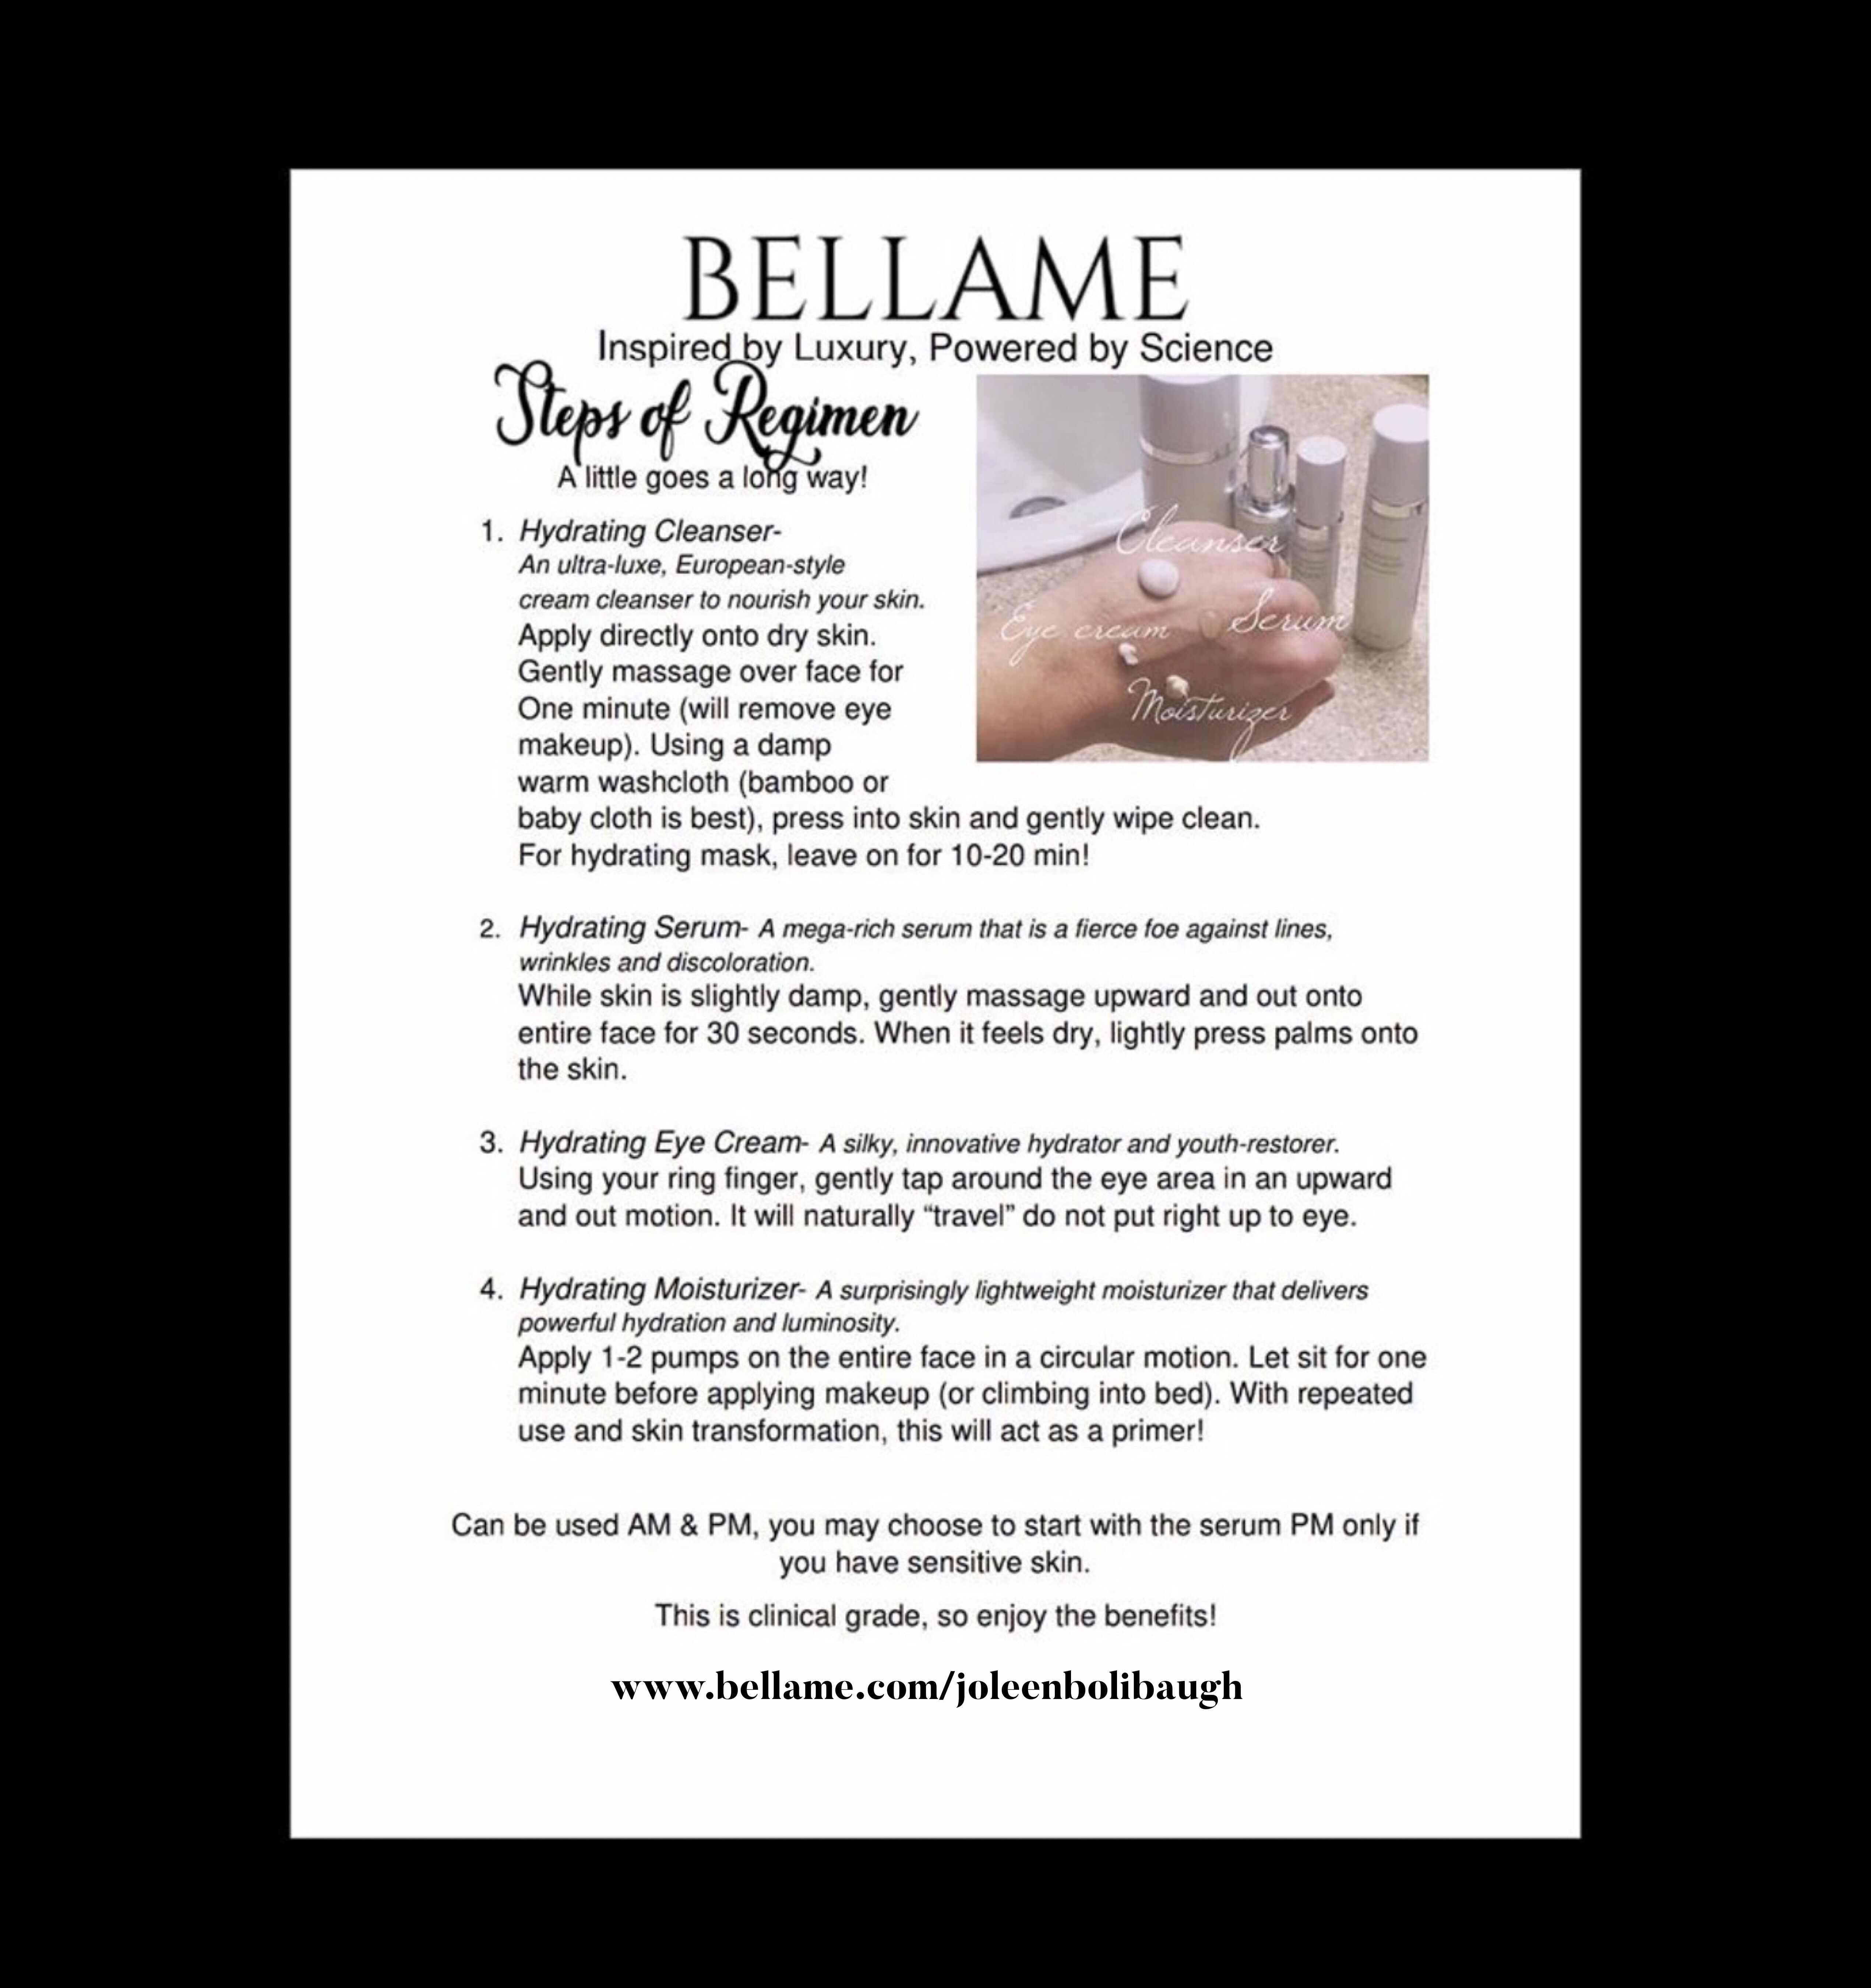 Step Bt Step Guide On How To Apply And Use Bellame Www Bellame